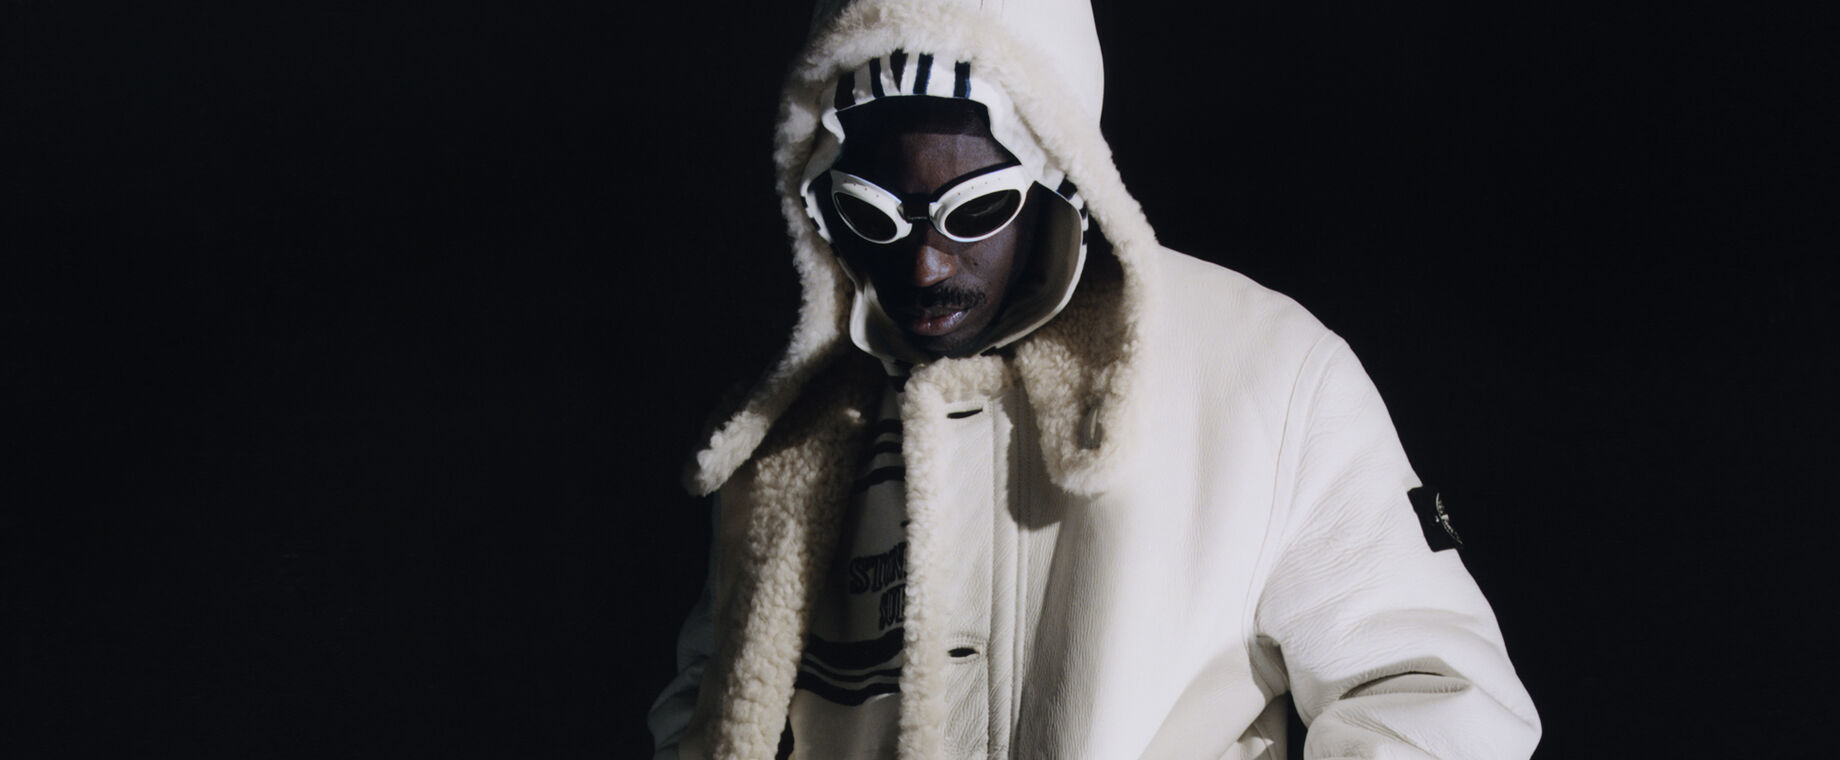 Against a black background, model wearing a white hooded sheepskin jacket, a black and white striped hoodie and white goggles with dark lenses.